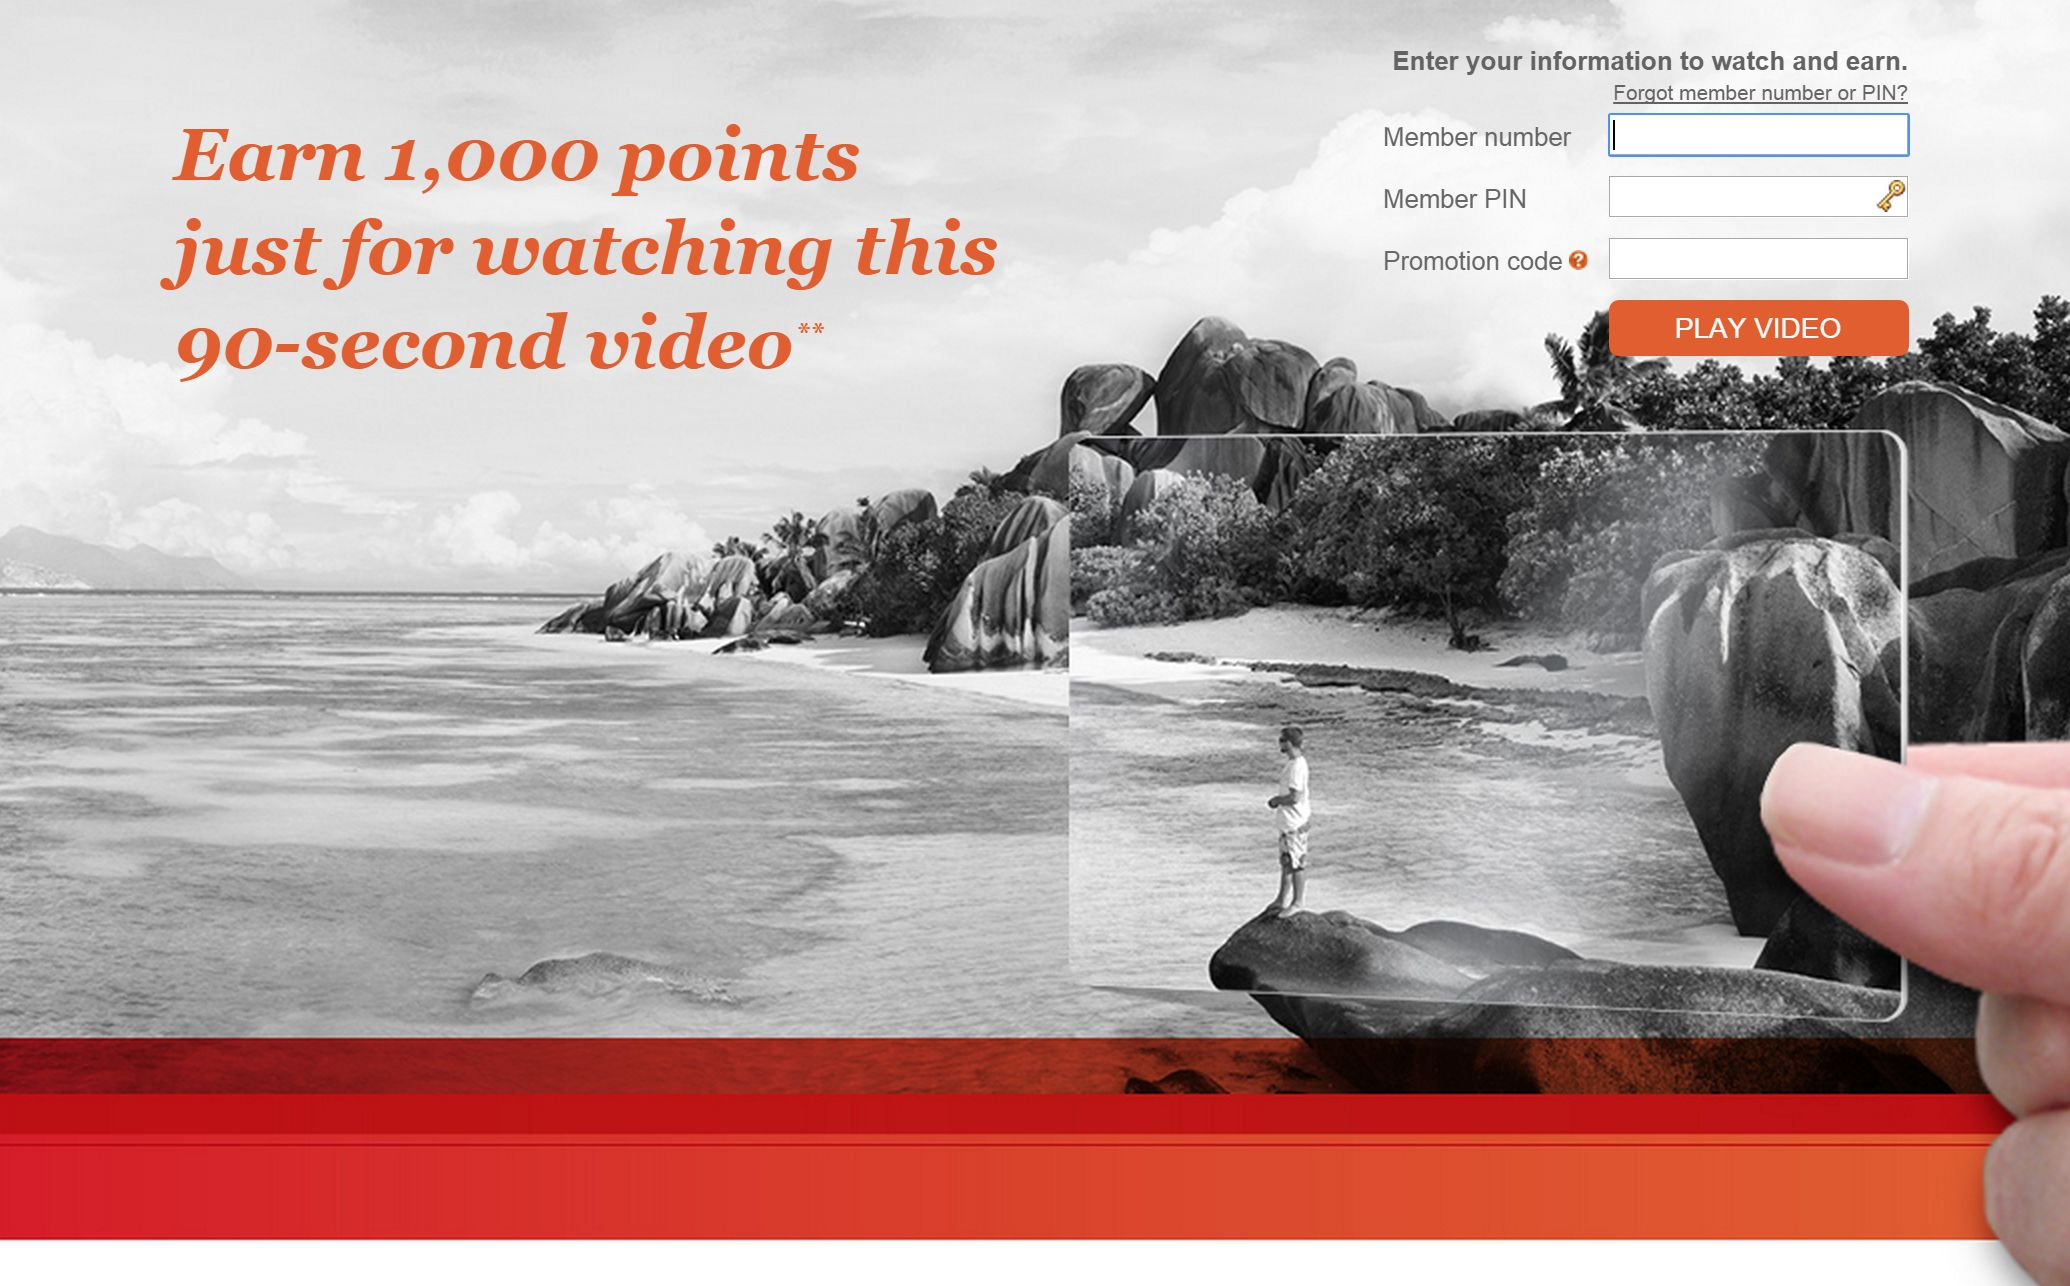 IHG Rewards Club 90 second video gives you 1000 Points